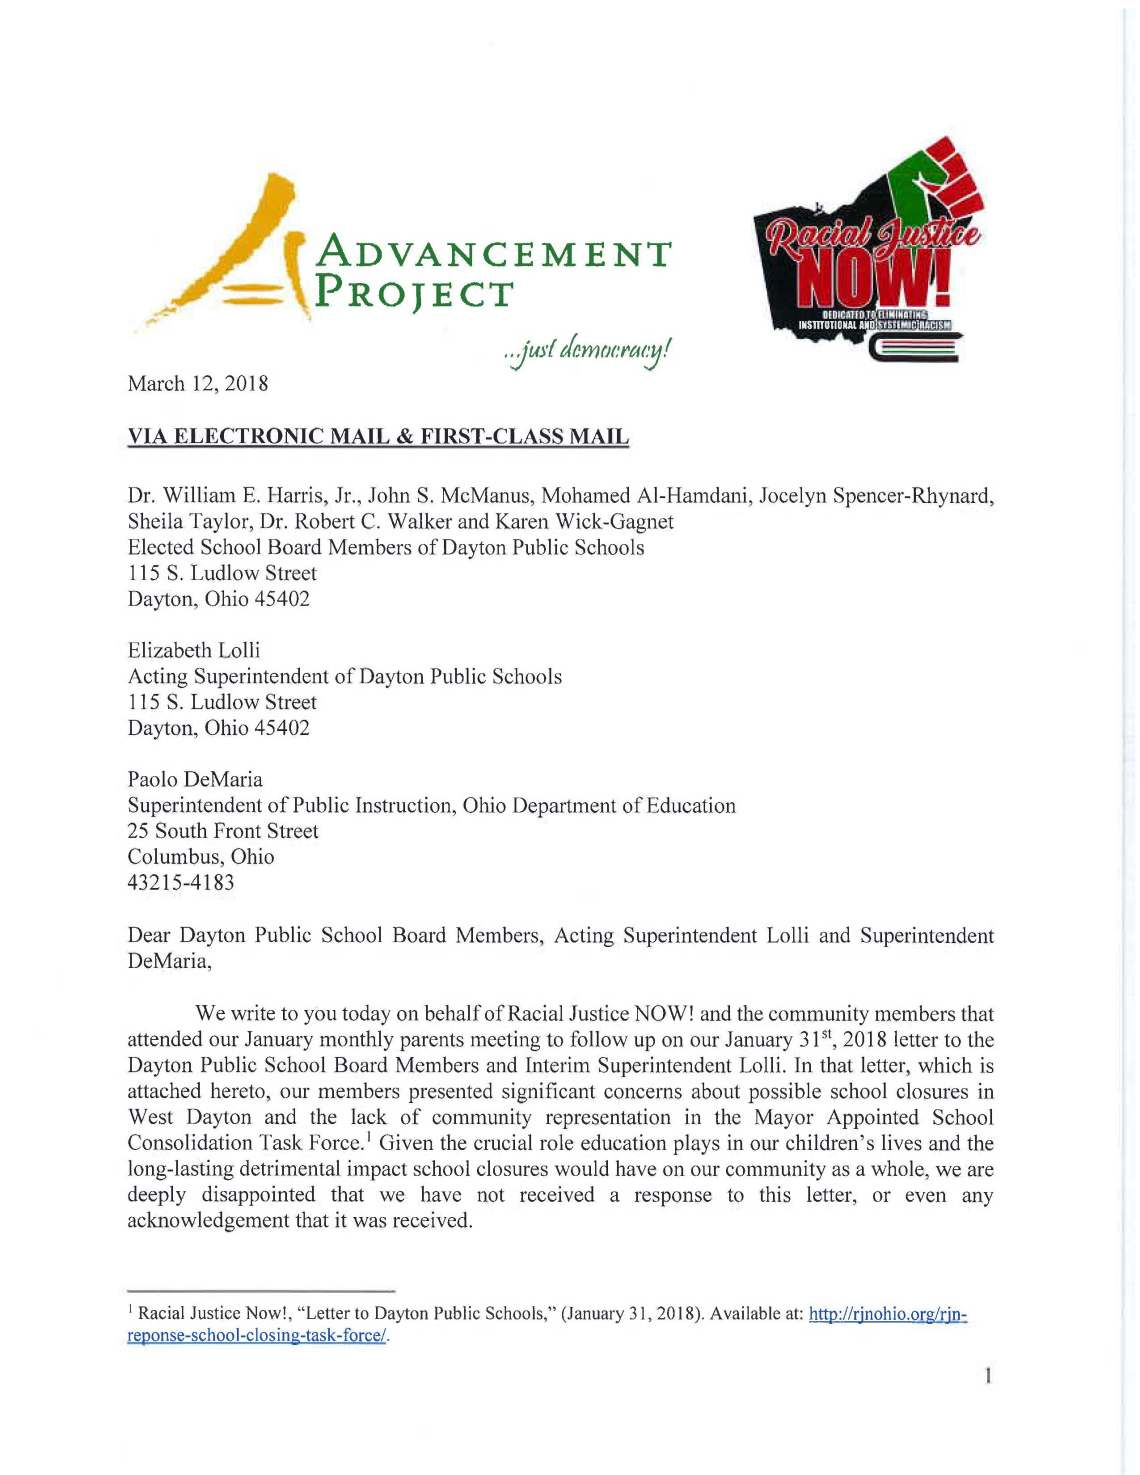 March Th Letter From Rjn  Advancement Project To Dayton Public